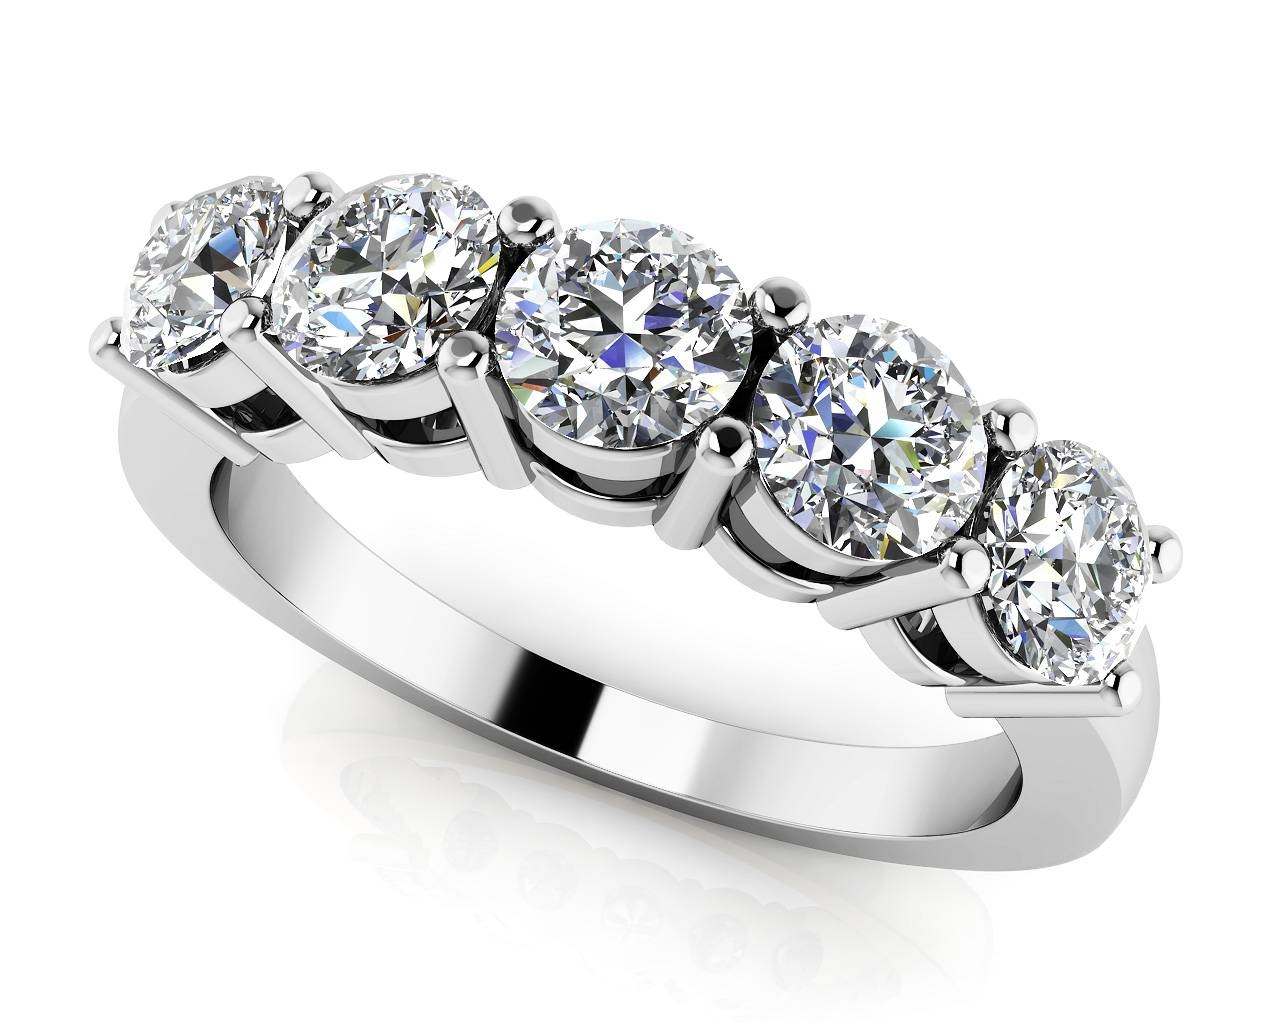 Design Your Own Diamond Anniversary Ring & Eternity Ring Within Recent 3 Stone Diamond Anniversary Rings (View 6 of 25)